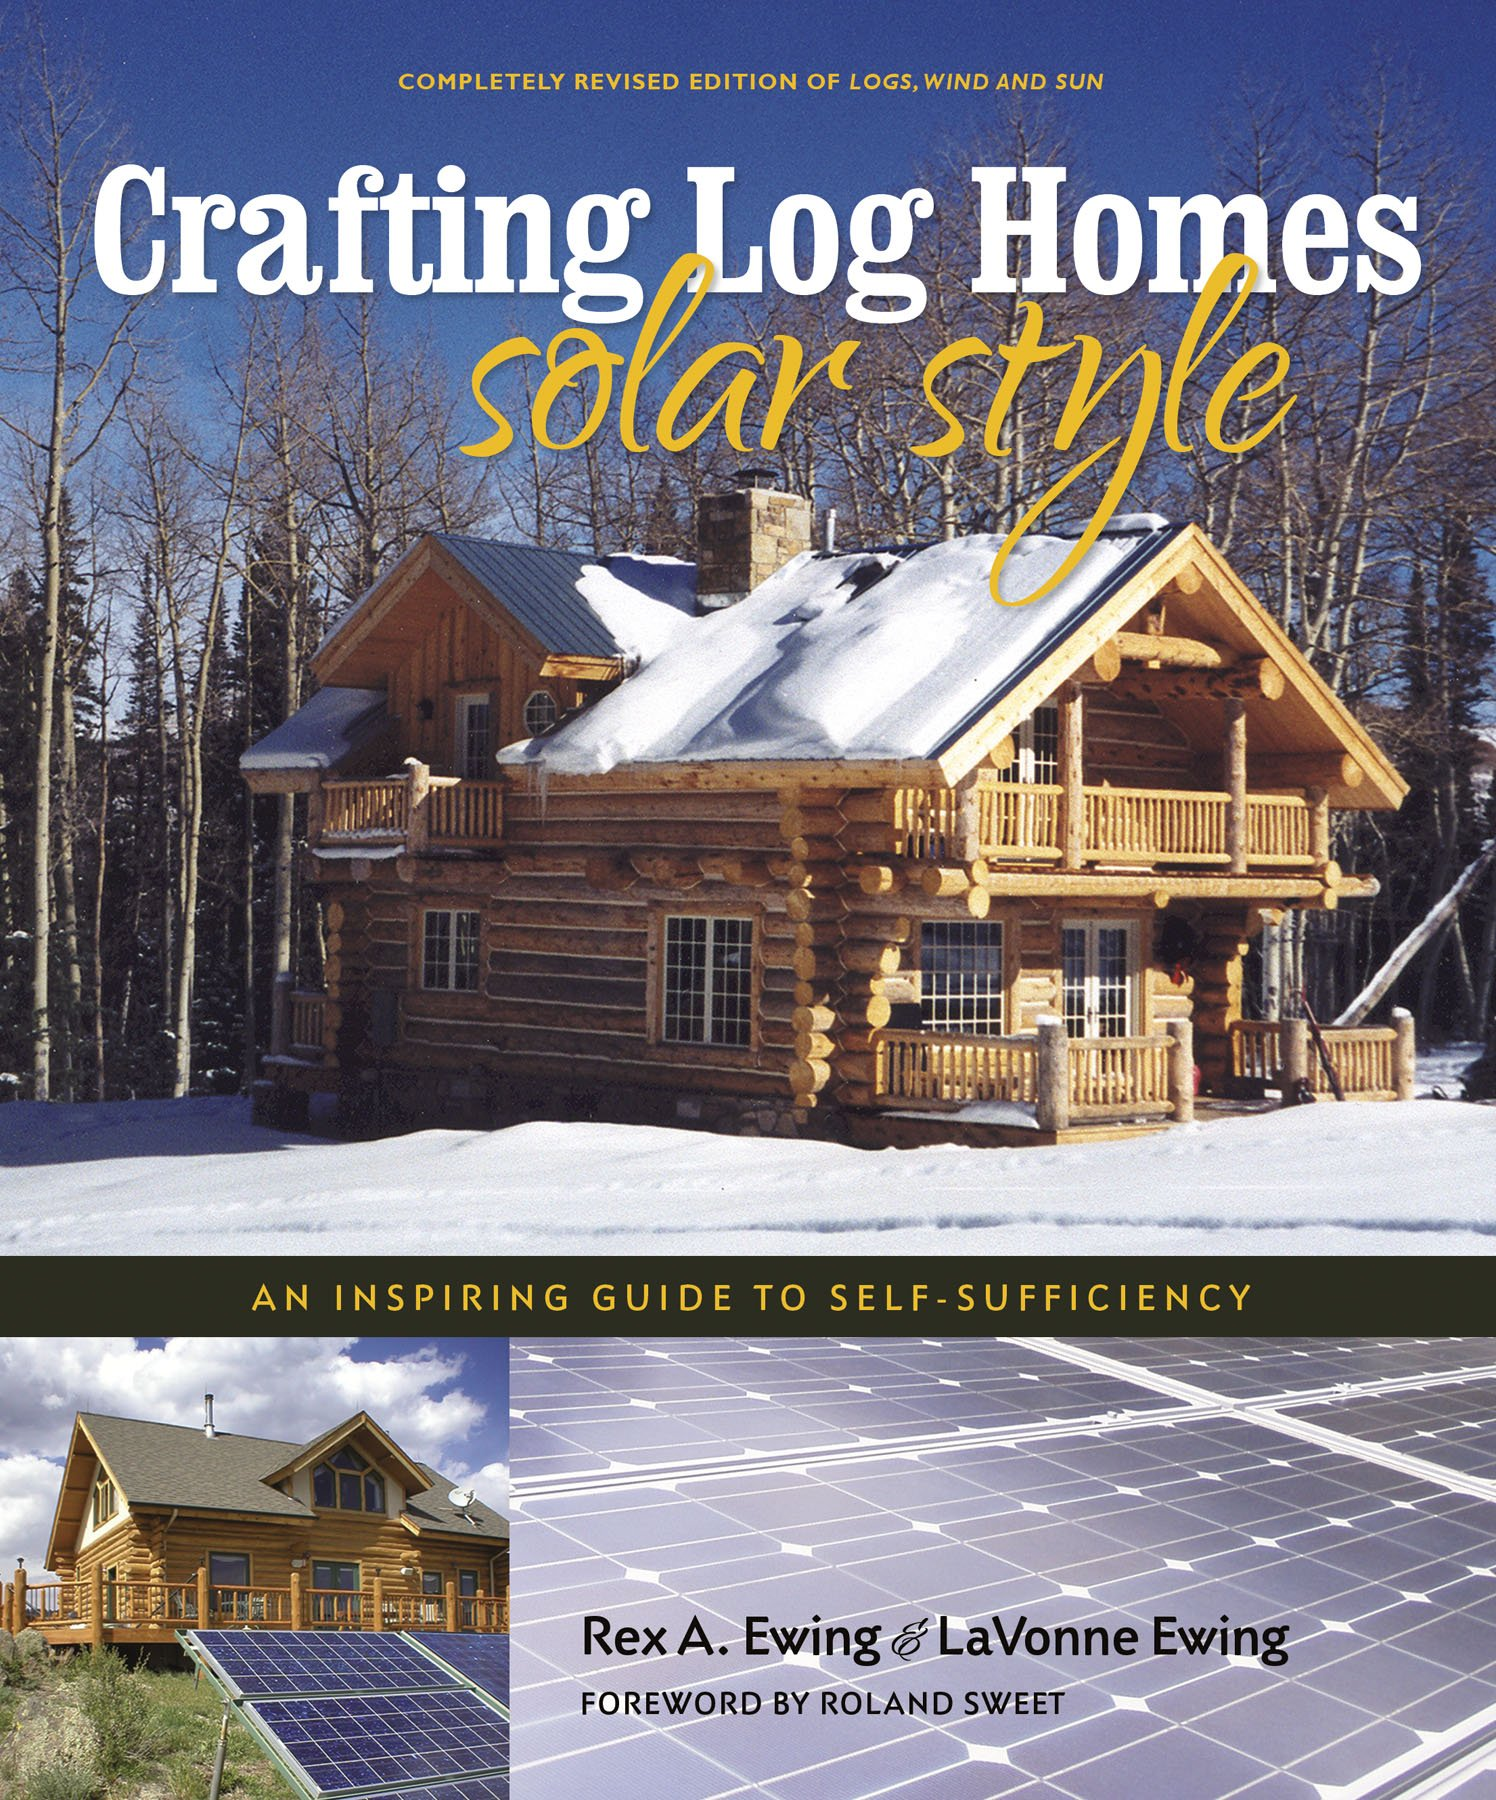 nice log home books #4: Crafting Log Homes Solar Style: An Inspiring Guide to Self-Sufficiency: Rex  A. Ewing and LaVonne Ewing: 9780977372447: Amazon.com: Books